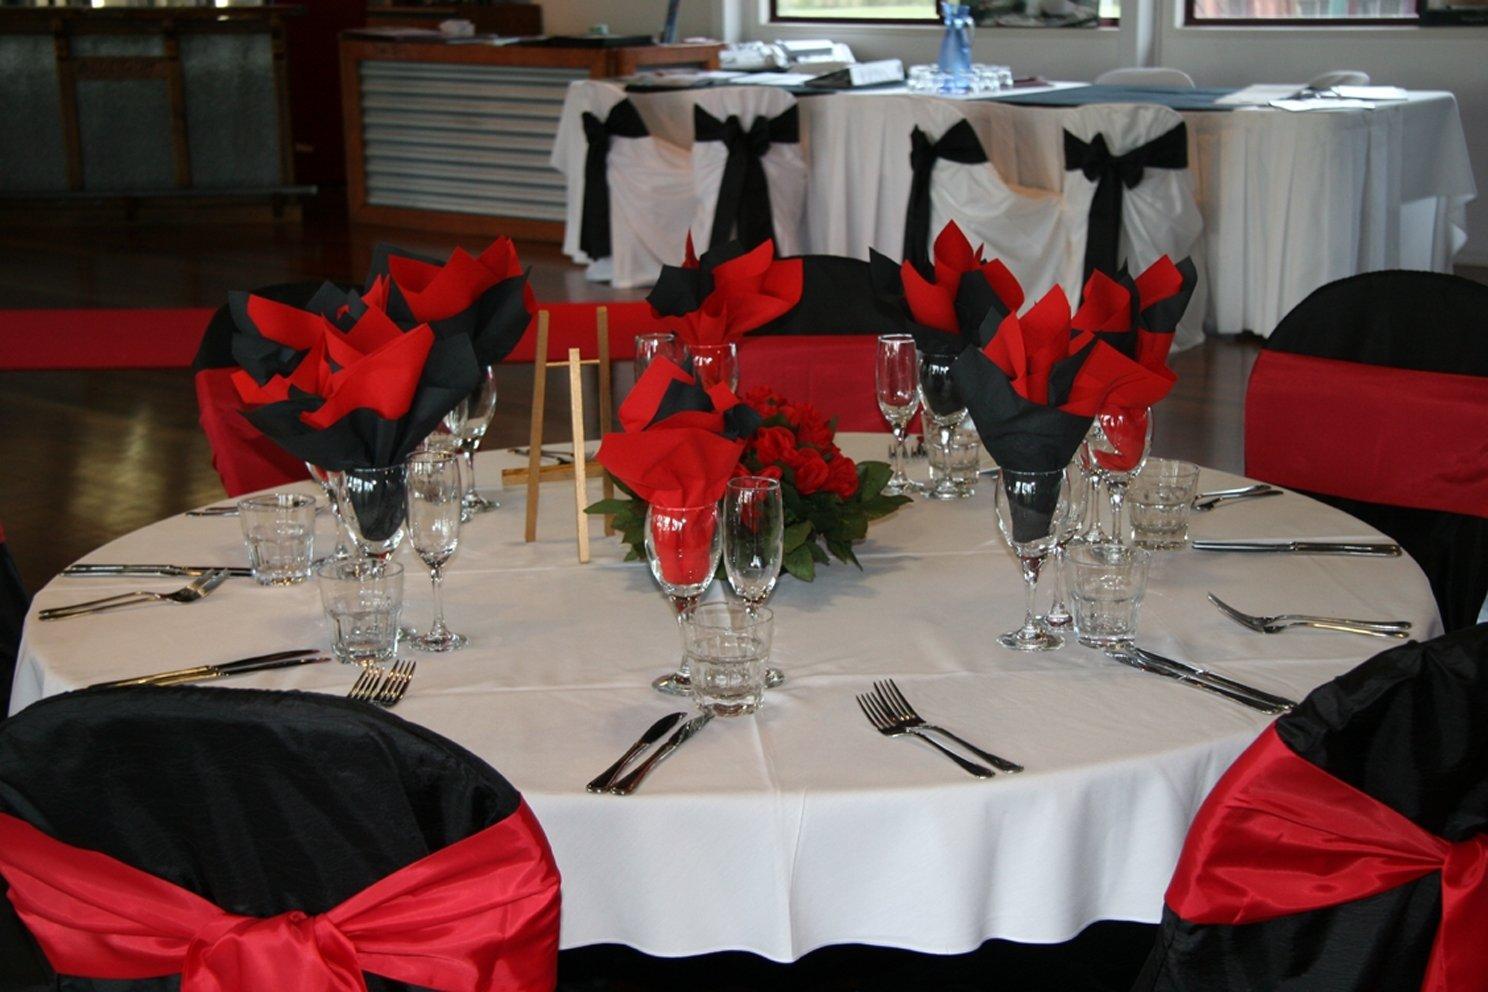 10 Ideal Black Red And White Wedding Ideas wedding decoration beautiful dining table decoration for wedding red 2